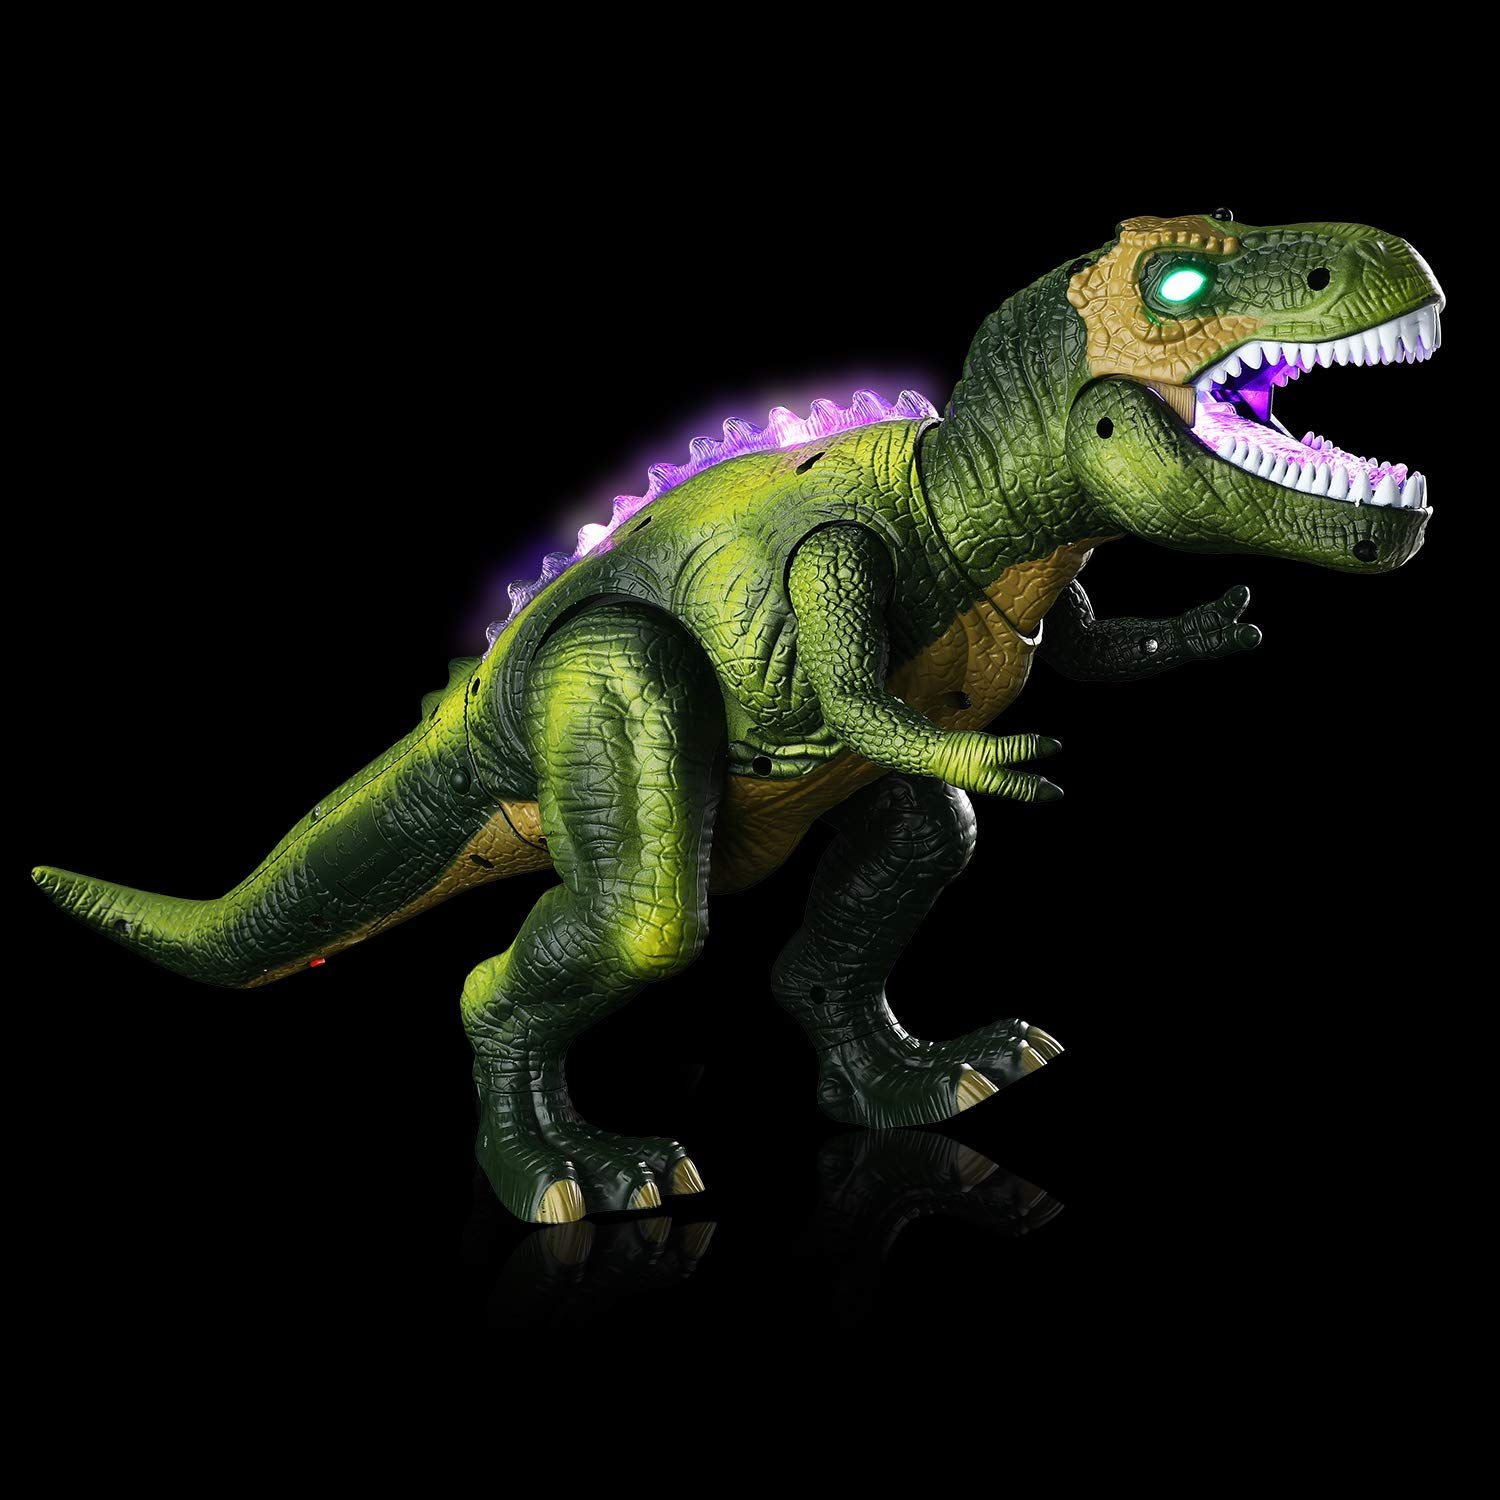 Tuko Light Up Remote Control Dinosaur Toys Jurassic World Walking and Roaring Realistic T-Rex Dinosaur Toys with Glowing Eyes, Walking Movement, Shaking Head for Toddlers Boys Girls by Tuko (Image #3)